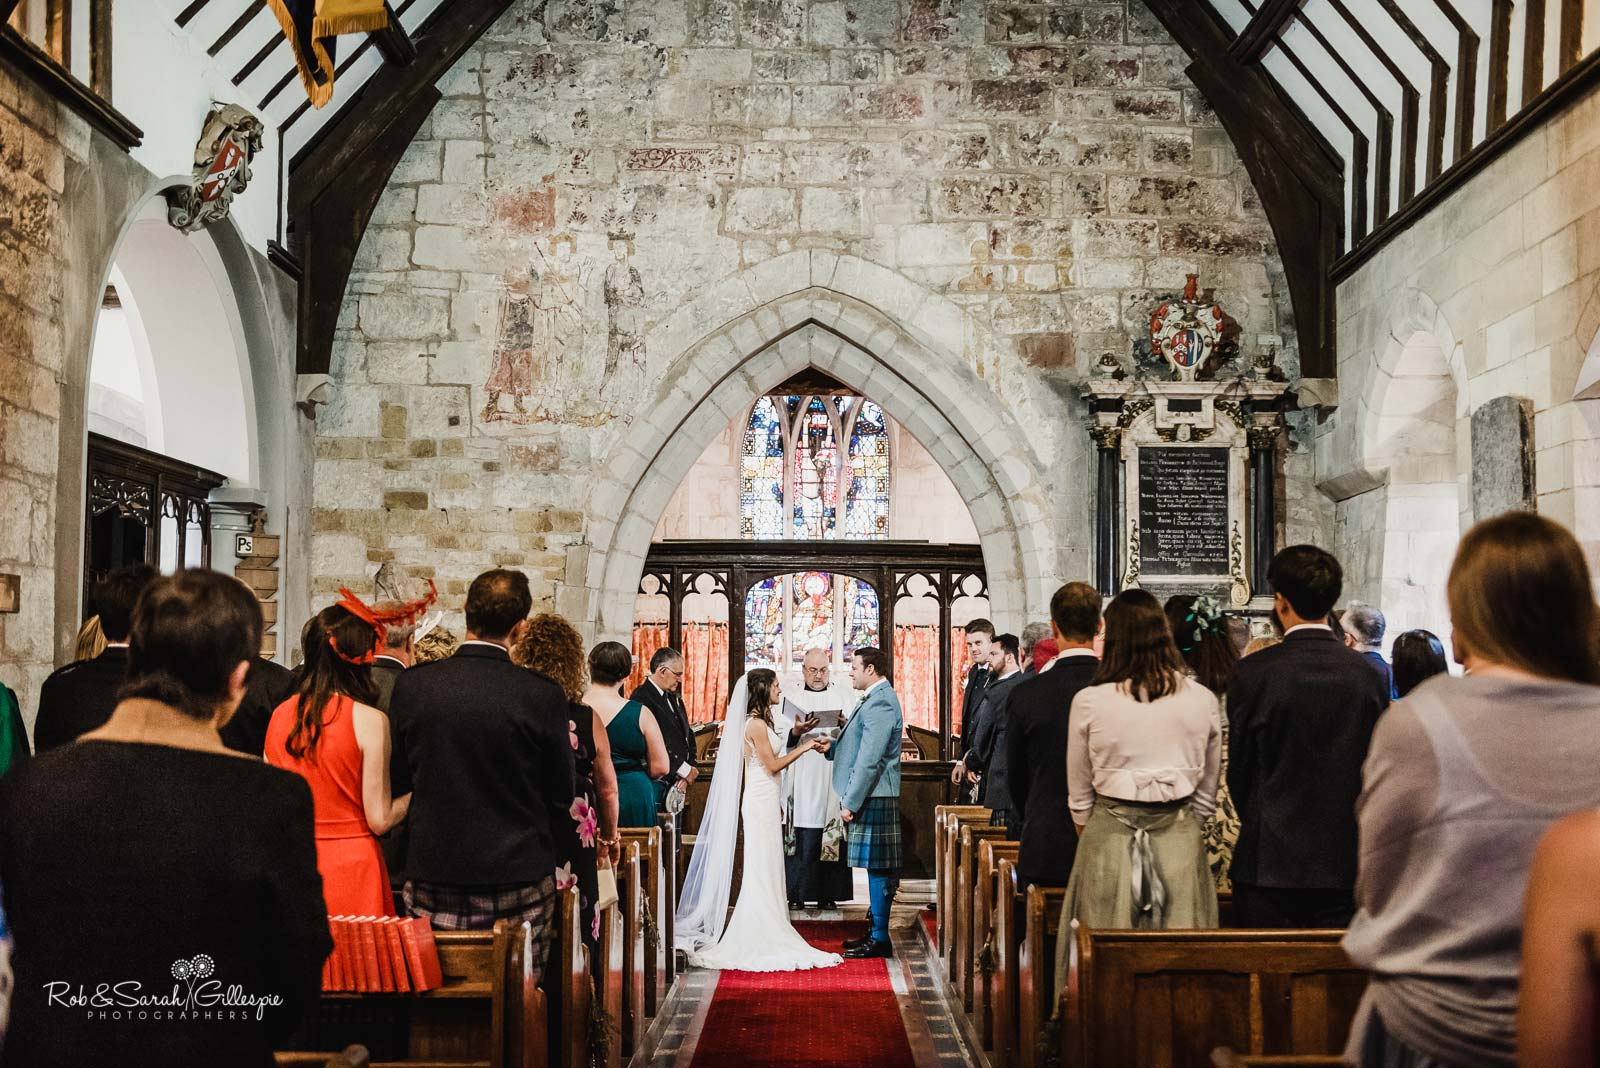 Bride and groom get married at St Giles church Packwood